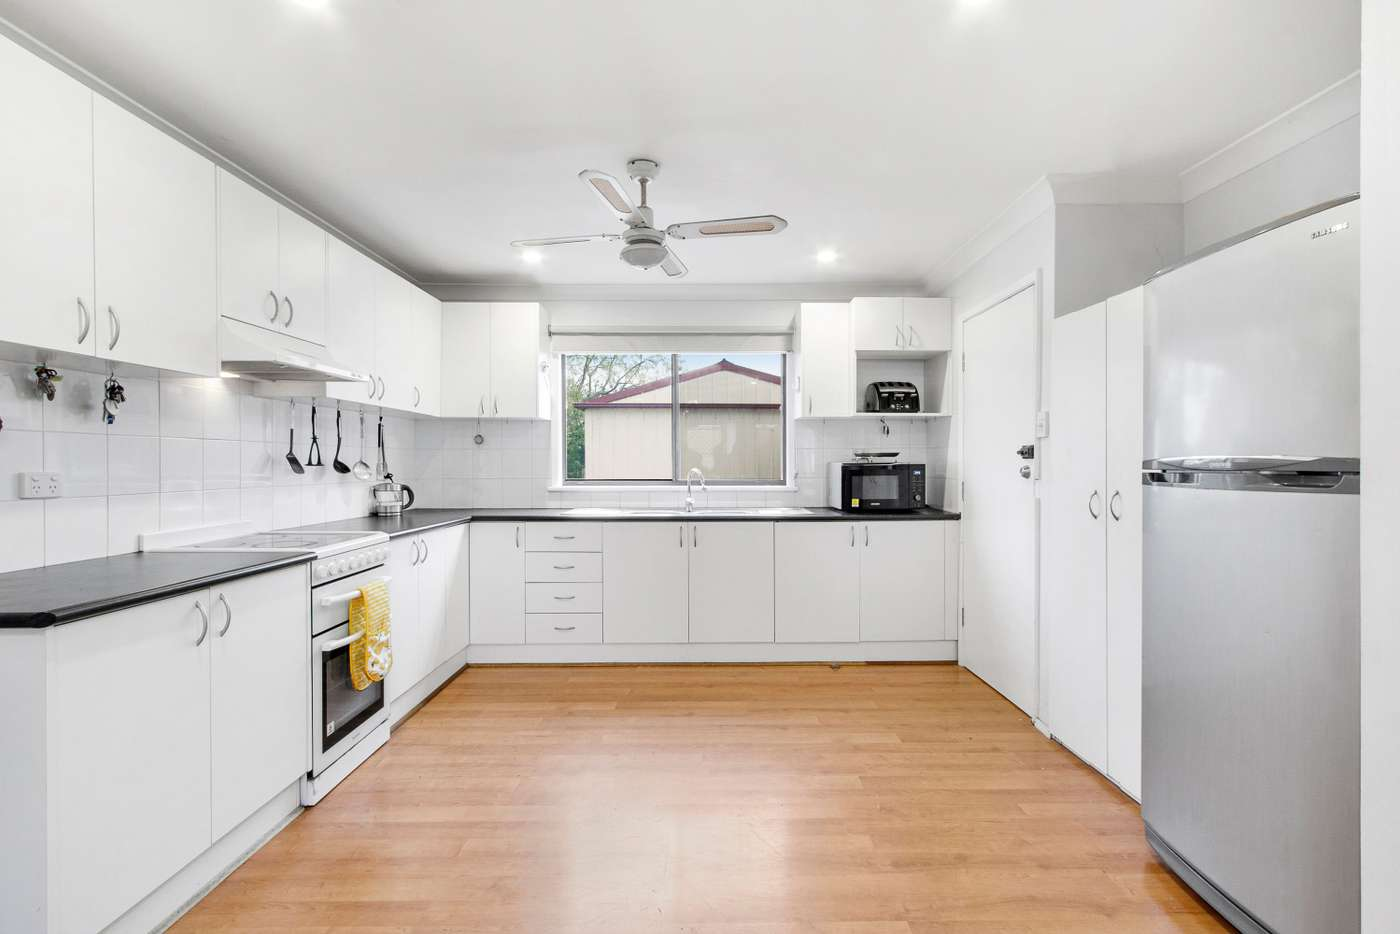 Sixth view of Homely house listing, 29 High Street, Mcgraths Hill NSW 2756